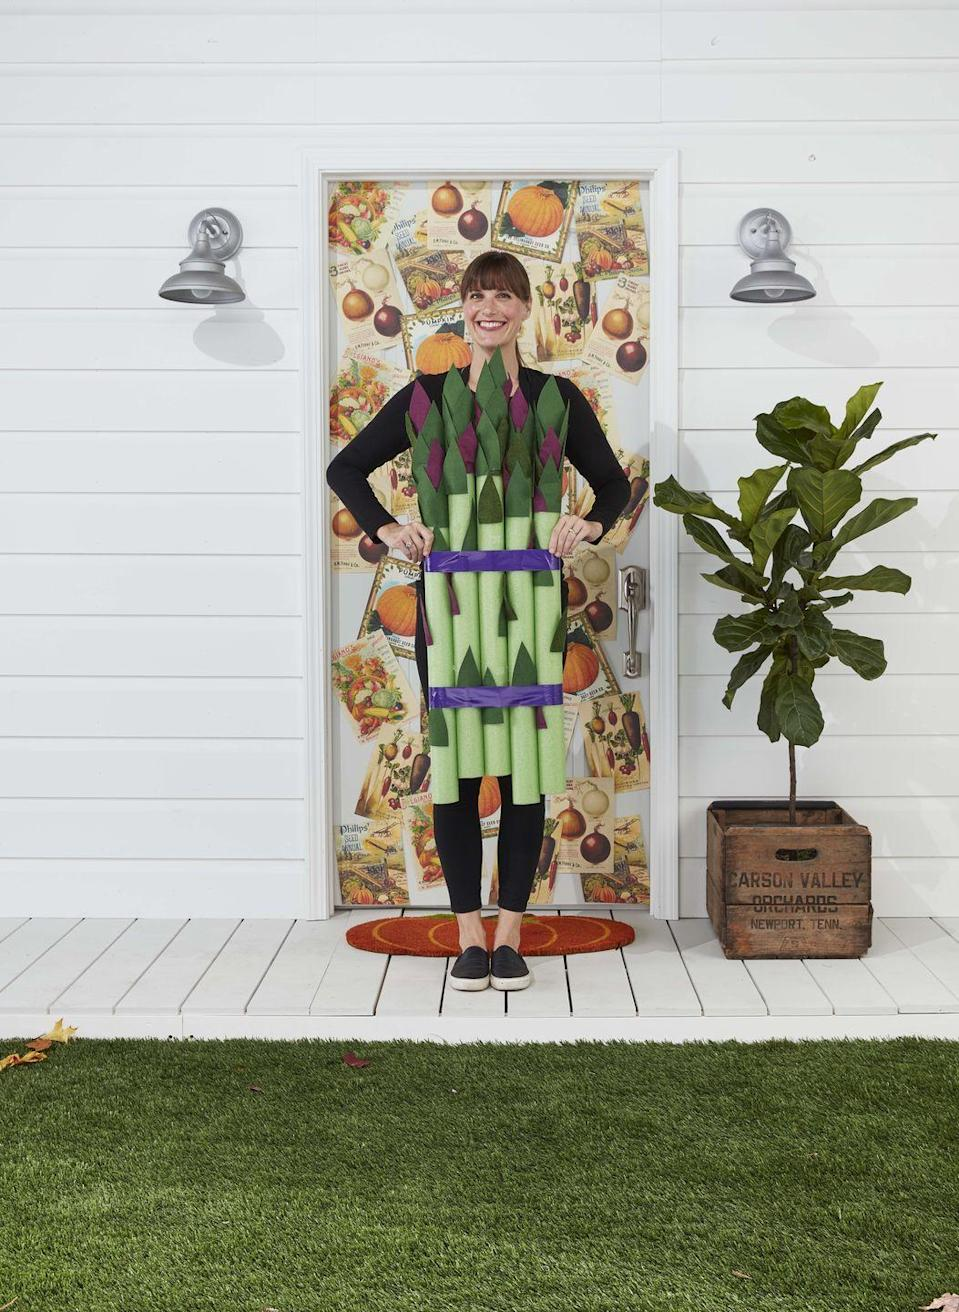 """<p>Serve up a little of your favorite vegetable in costume form! <strong><br></strong></p><p><strong>Make the Costume:</strong> Gather five lime green pool noodles. Cut leaves from purple and green felt (see template); you will need 10 to 12 for each stalk. Adhere to noodles, concentrating them at the top, with spray adhesive. Bundle pool noodles with purple duct tape. Tape a pair of suspenders to the back of the noodles and drape over shoulders.</p><p><a class=""""link rapid-noclick-resp"""" href=""""https://www.amazon.com/Oodles-Noodles-Deluxe-Foam-Pool/dp/B0787CFRDM/ref=sr_1_1_sspa?tag=syn-yahoo-20&ascsubtag=%5Bartid%7C10050.g.4571%5Bsrc%7Cyahoo-us"""" rel=""""nofollow noopener"""" target=""""_blank"""" data-ylk=""""slk:SHOP POOL NOODLES"""">SHOP POOL NOODLES</a></p>"""